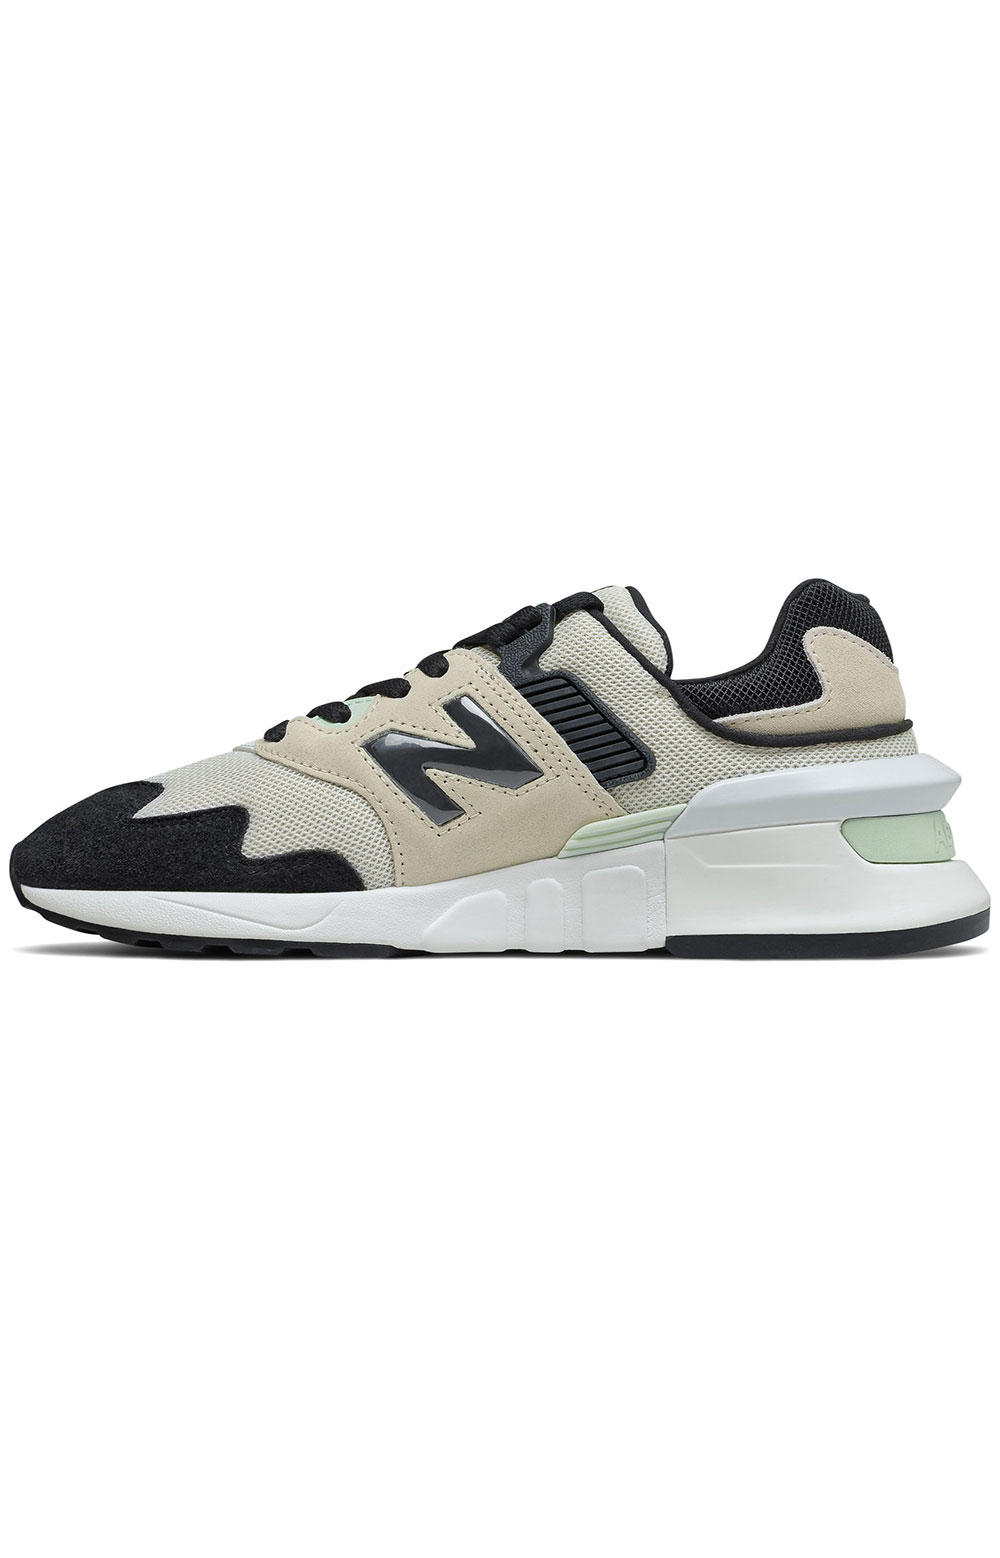 (WS997JKW) 997 Sport Shoes - Turtle Dove/Black 2